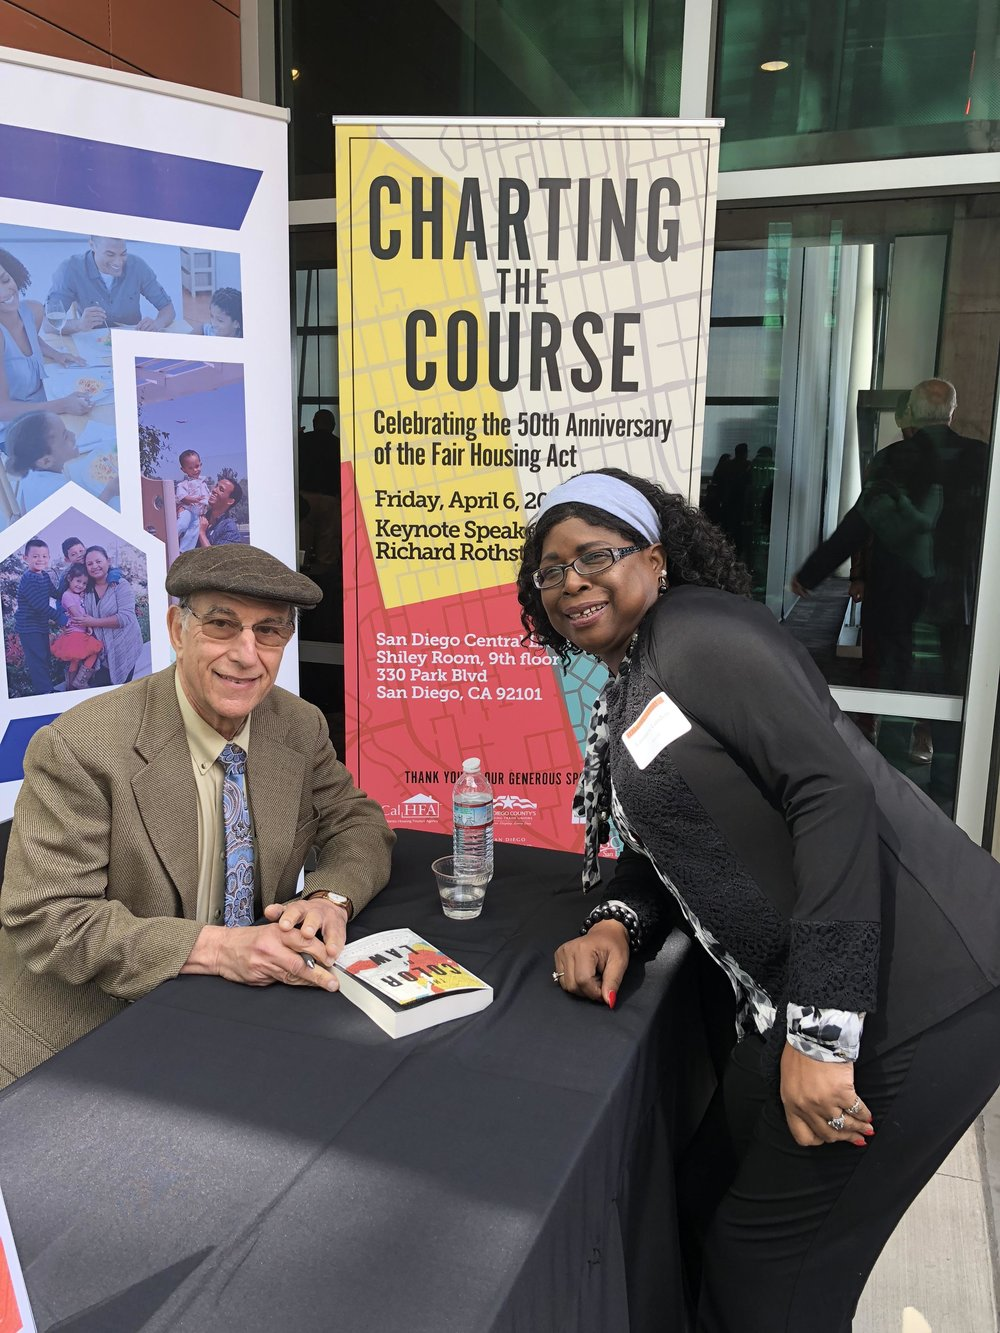 Lavearn London Meeting Author Richard Rothstein